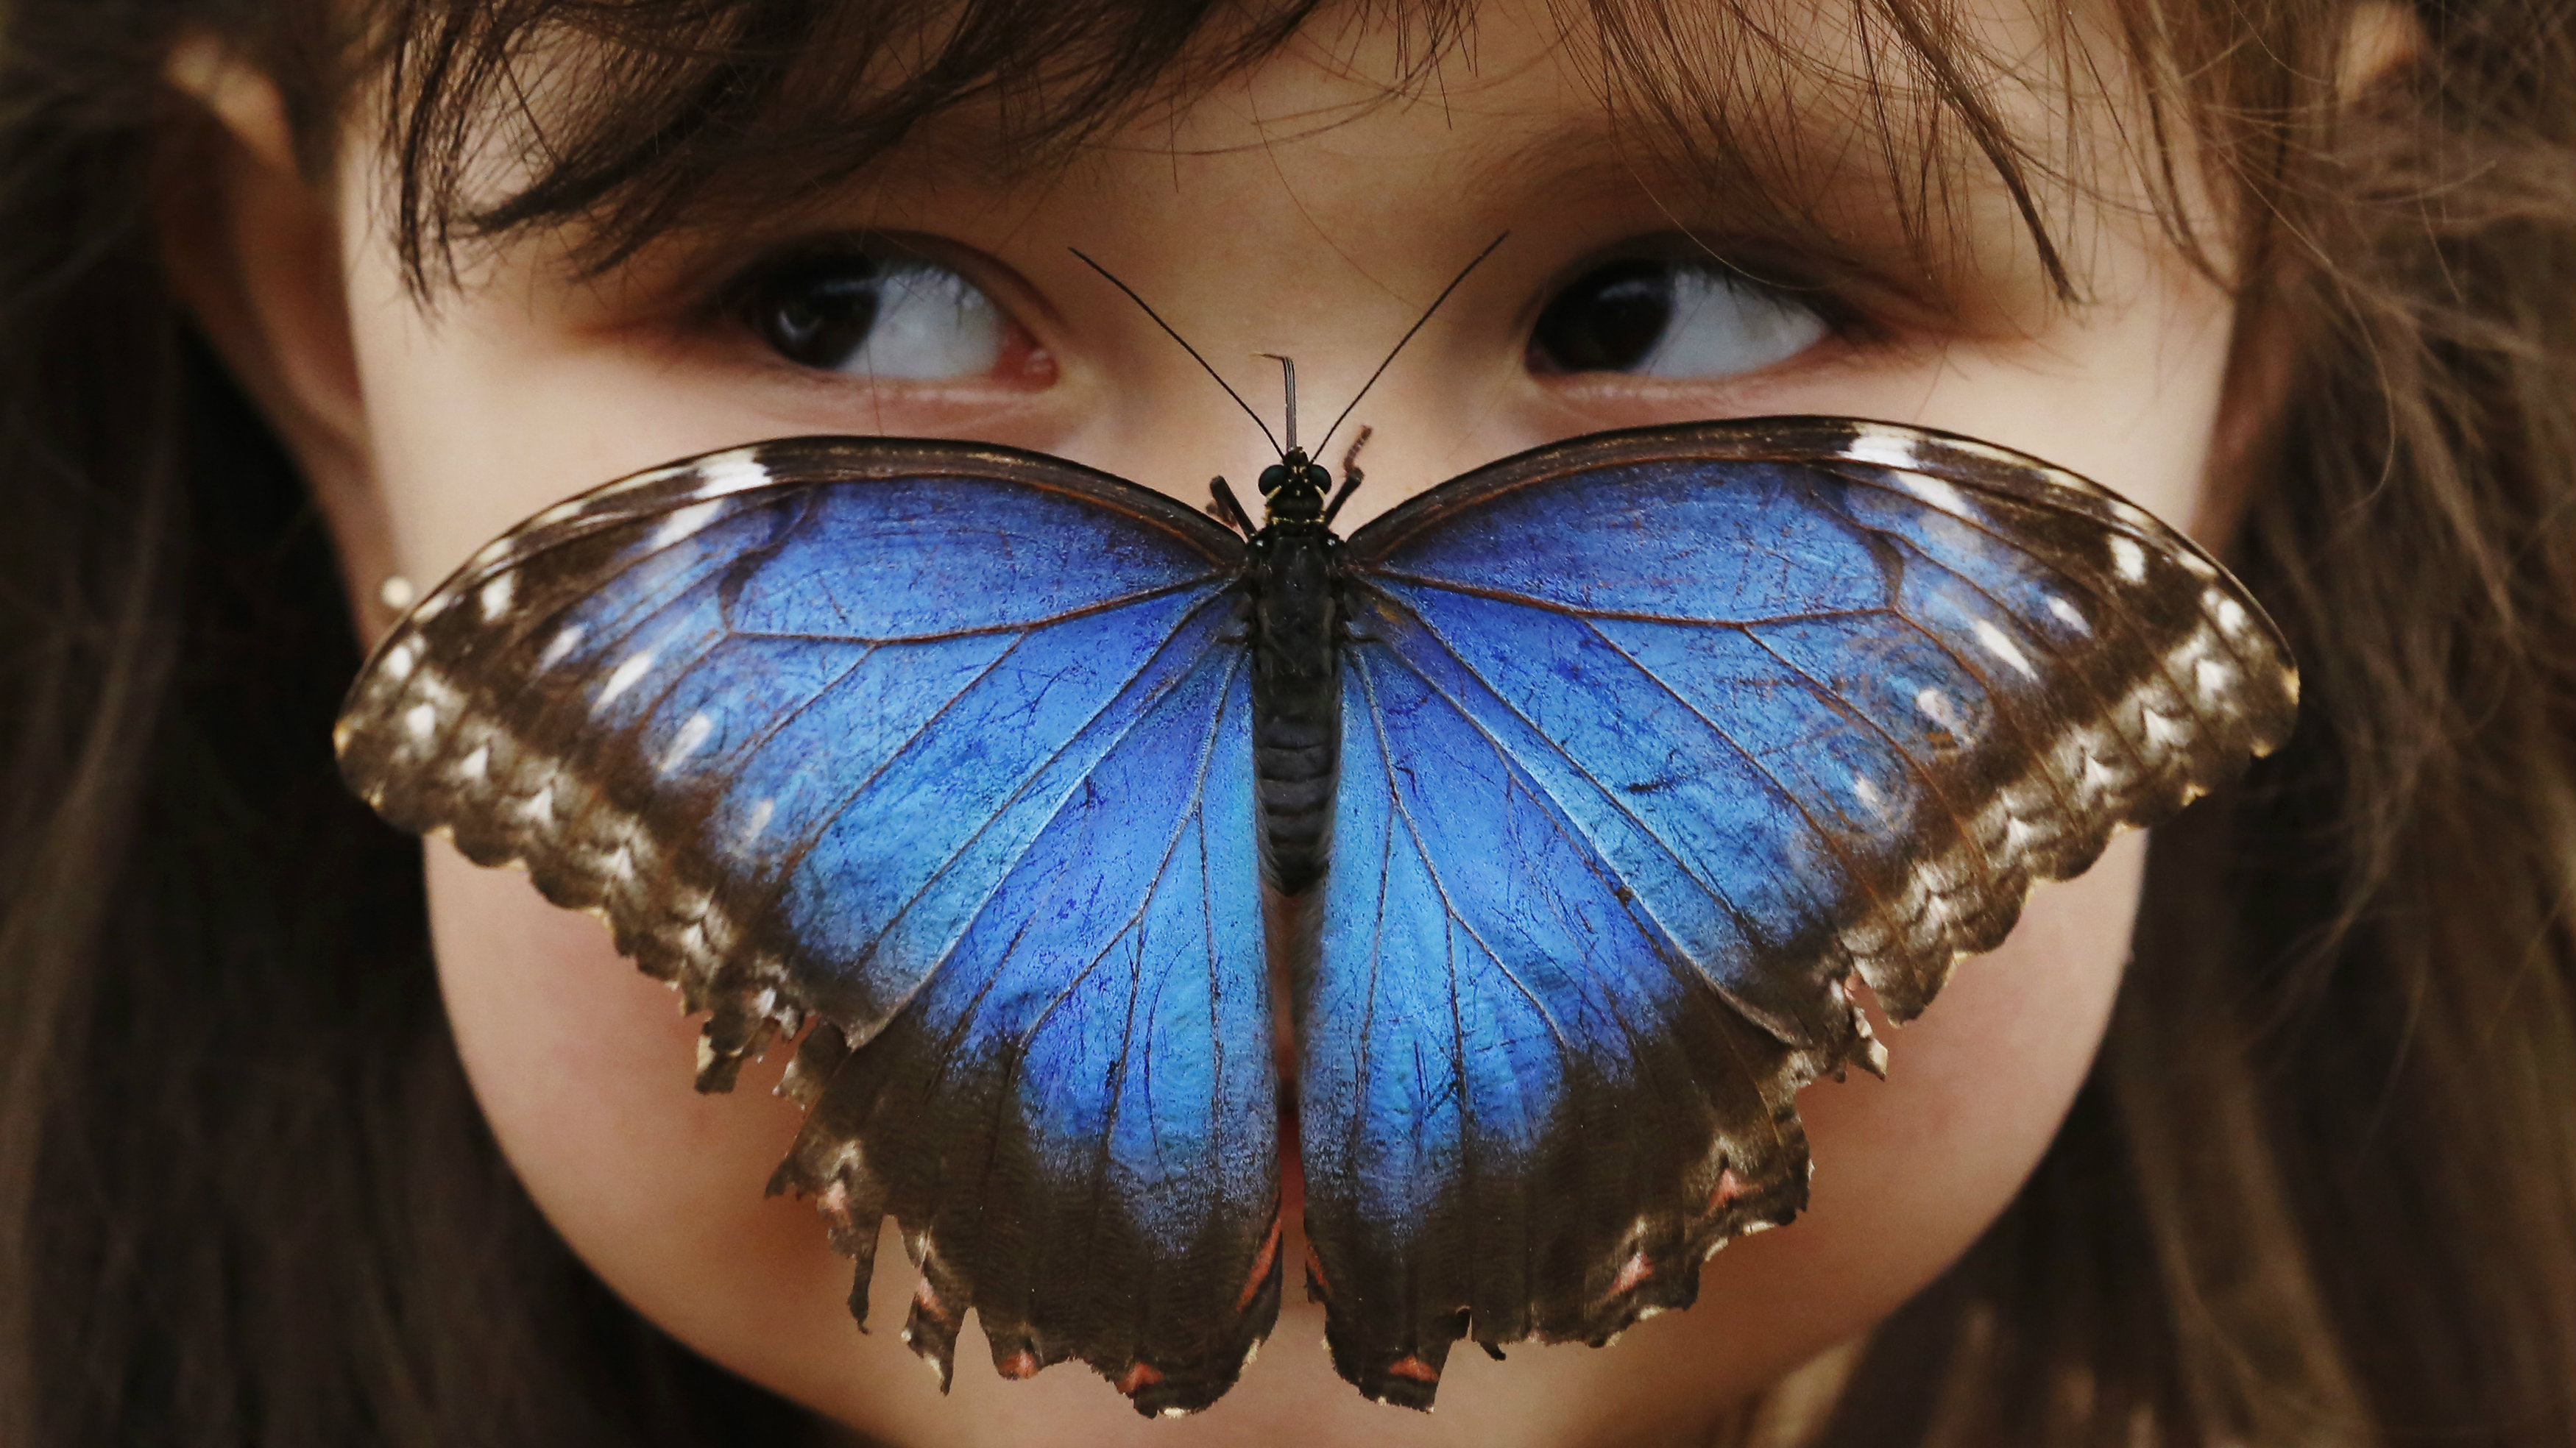 Stella Ferruzola, 3, poses with a Blue Morpho butterfly on her nose at the Sensational Butterflies Exhibition at the Natural History Museum in London March 25, 2013. REUTERS/Luke MacGregor (BRITAIN - Tags: ENTERTAINMENT SOCIETY ENVIRONMENT ANIMALS TPX IMAGES OF THE DAY)